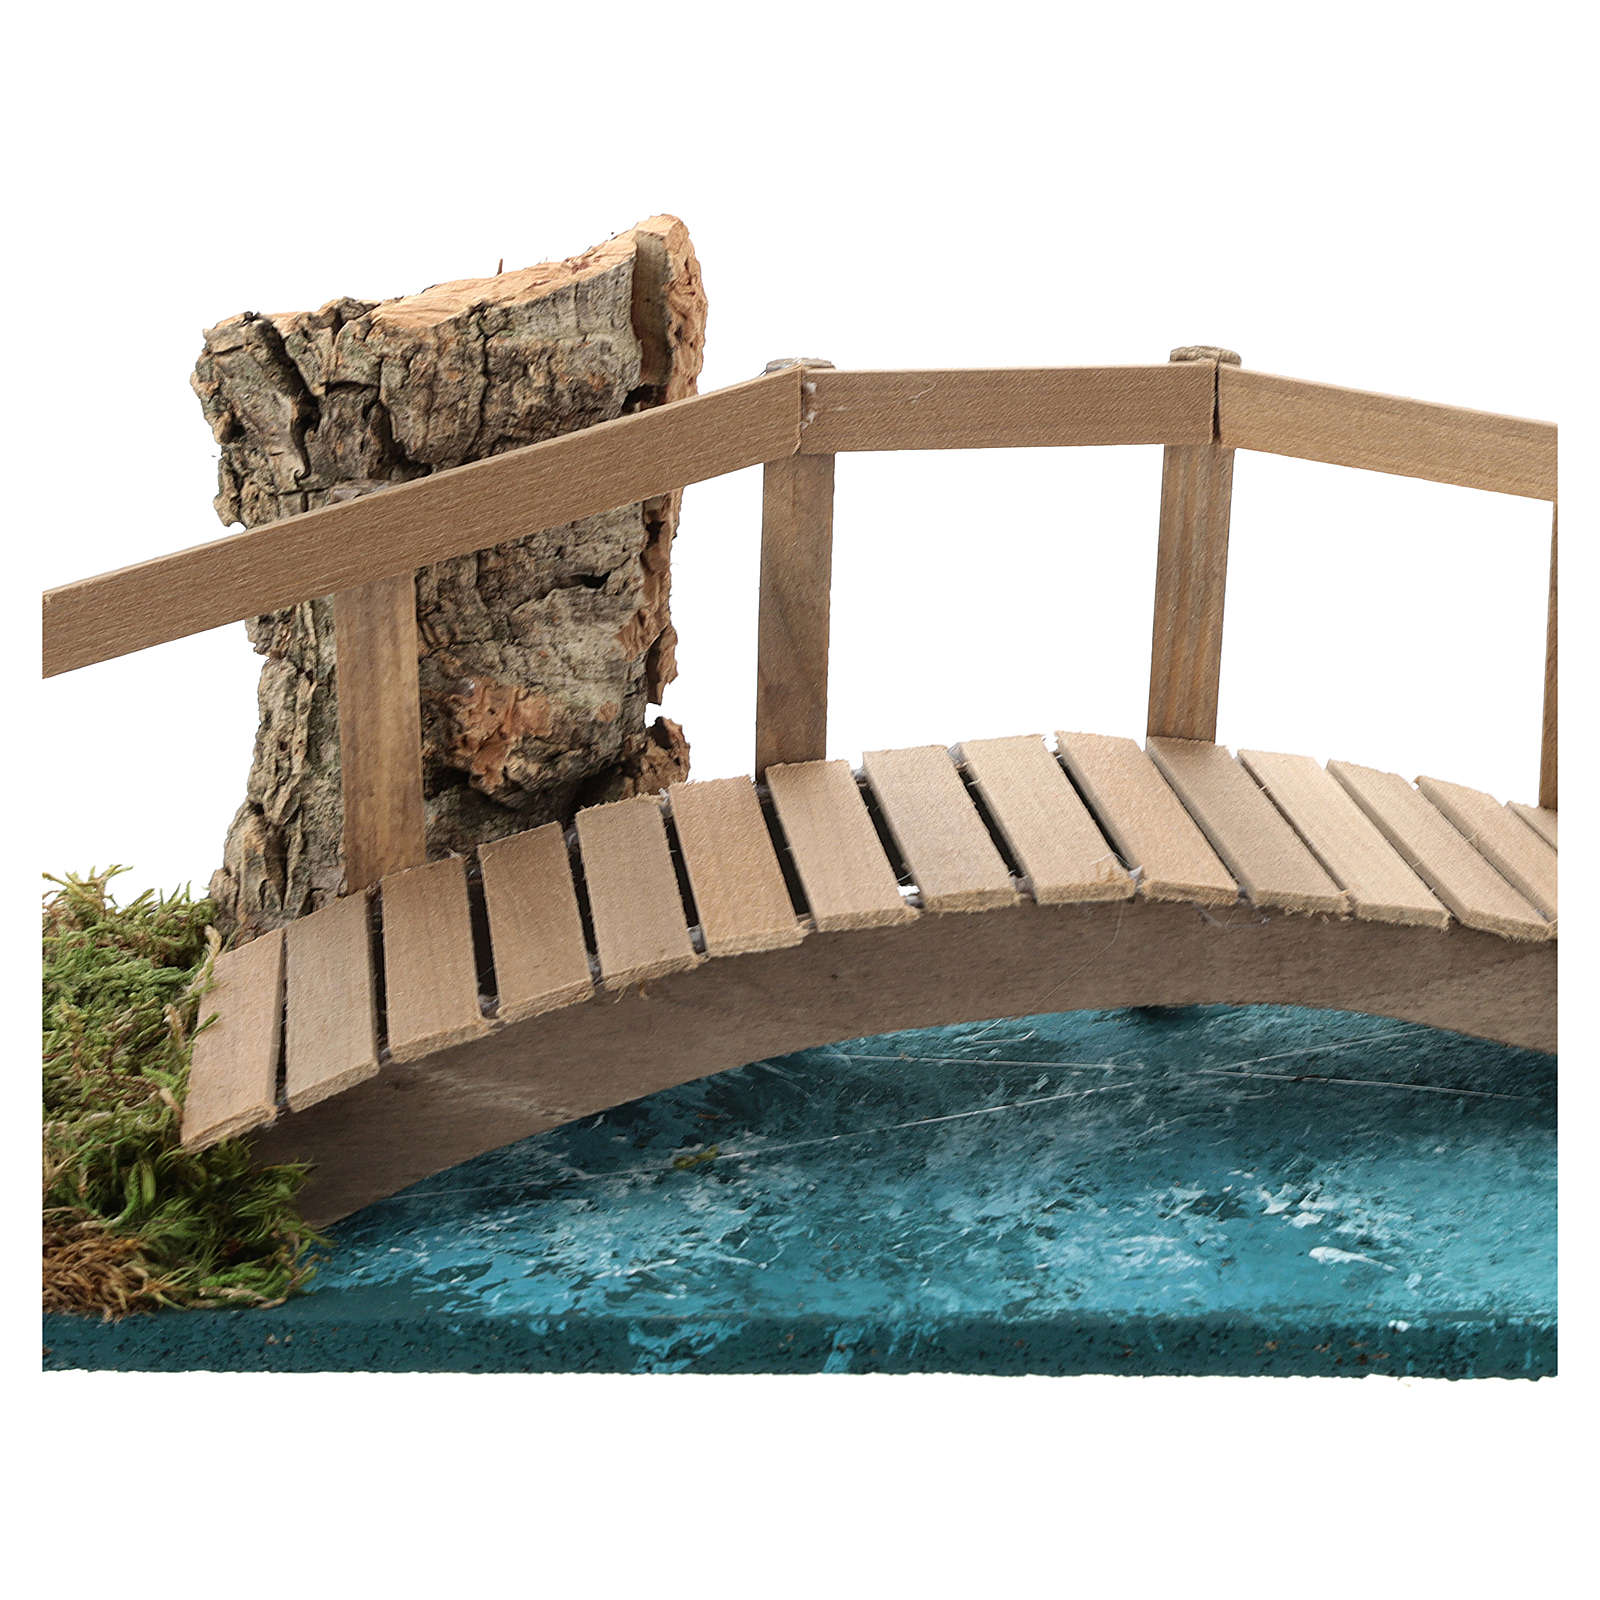 Bridge with railing 11x26x12 cm for Nativity scene 6-8 cm 4